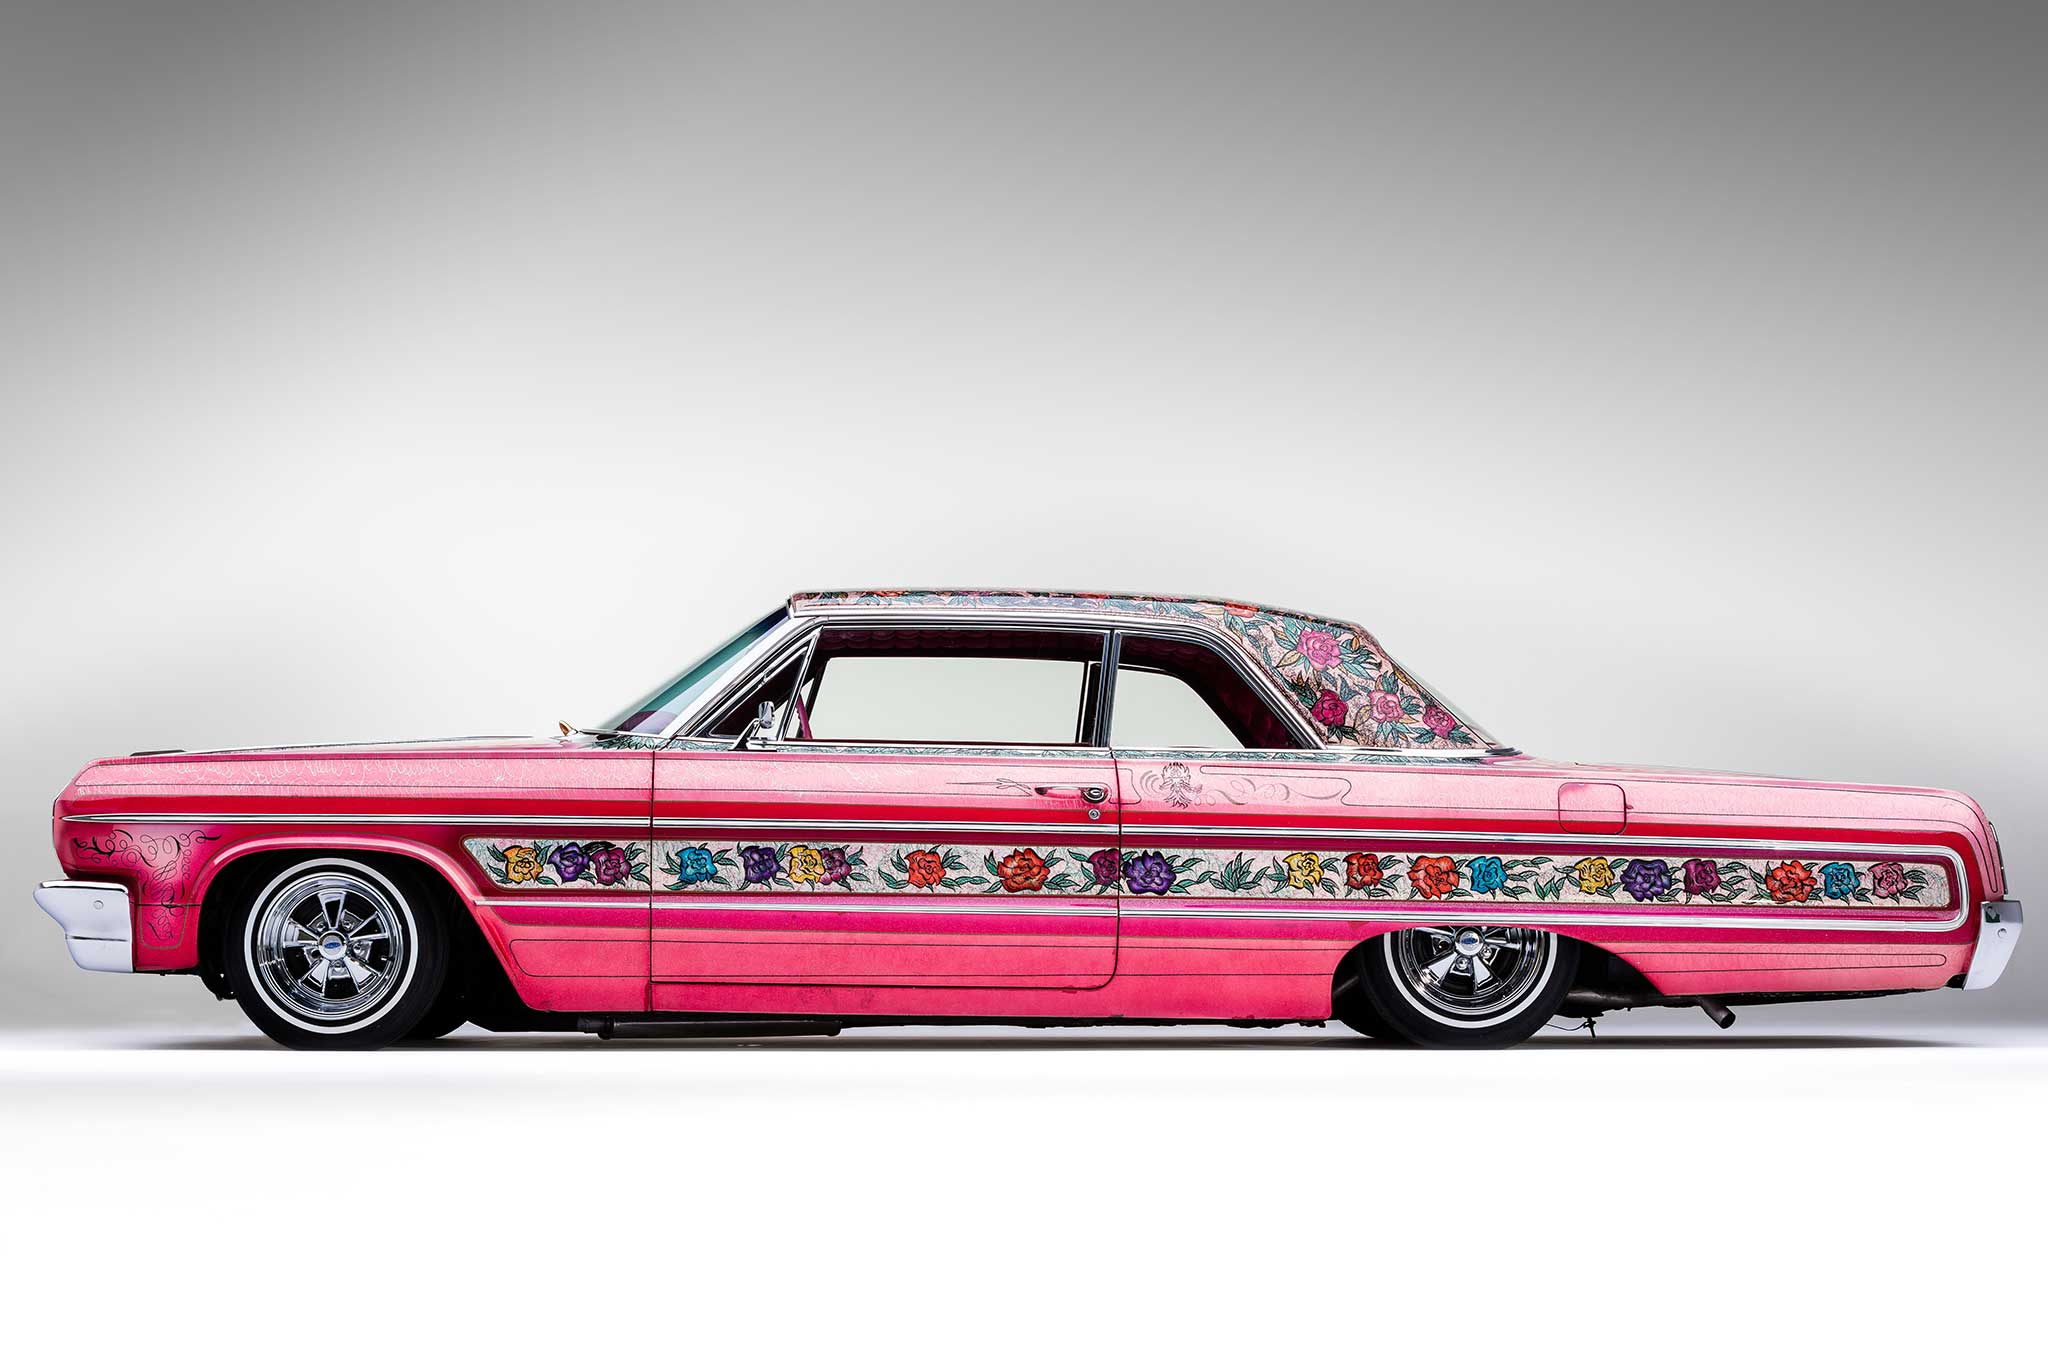 Gypsy Rose Will Be On Display At The National Mall